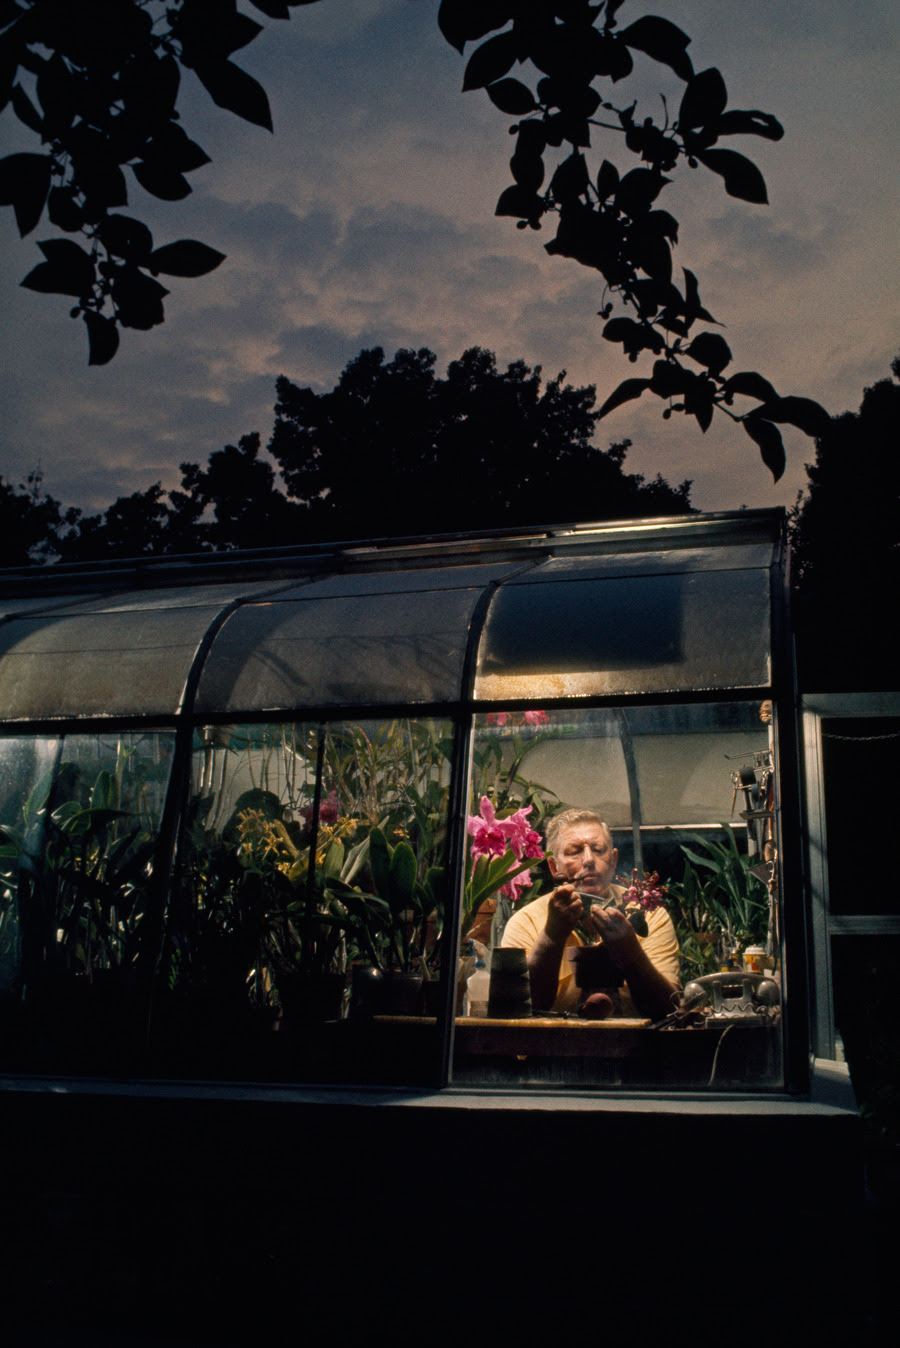 An amateur orchid grower works in the window of his greenhouse in Silver Spring, Maryland, April 1971.Photograph by Gordon Gahan, National Geographic